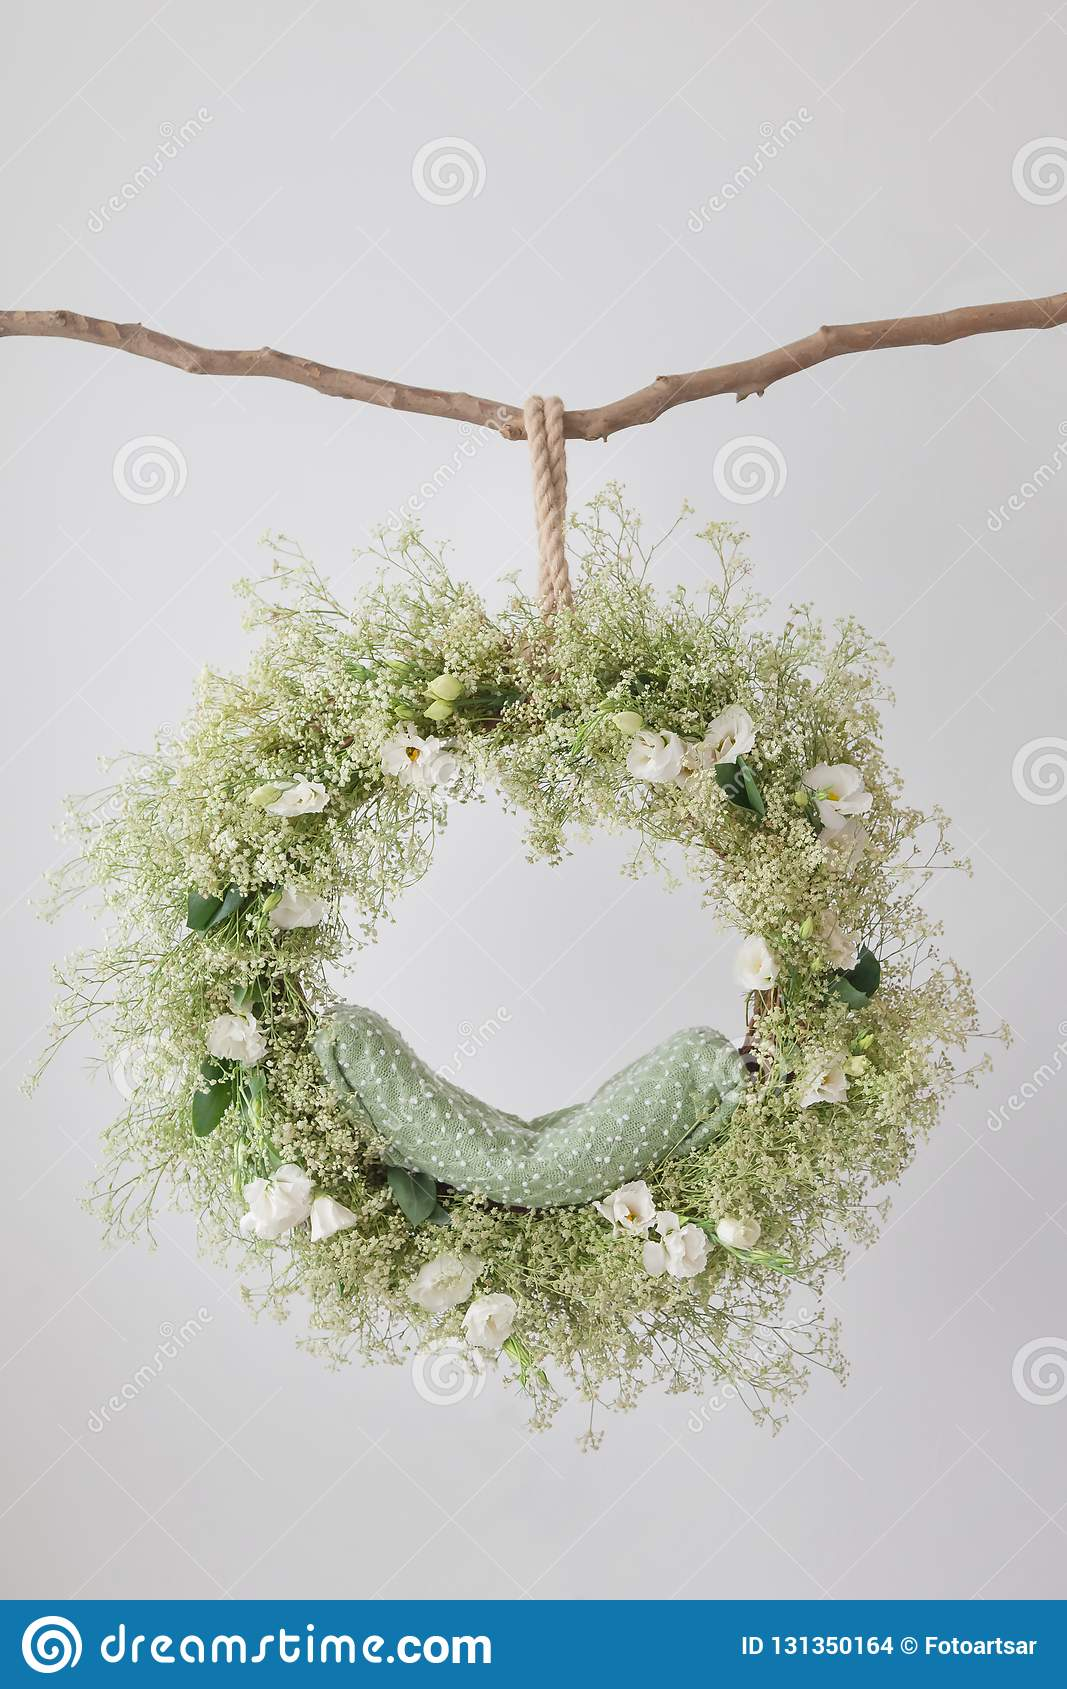 On the branch hangs a ring cradle for a photo shoot of newborns, a dream catcher, a floral arrangement with eustomas